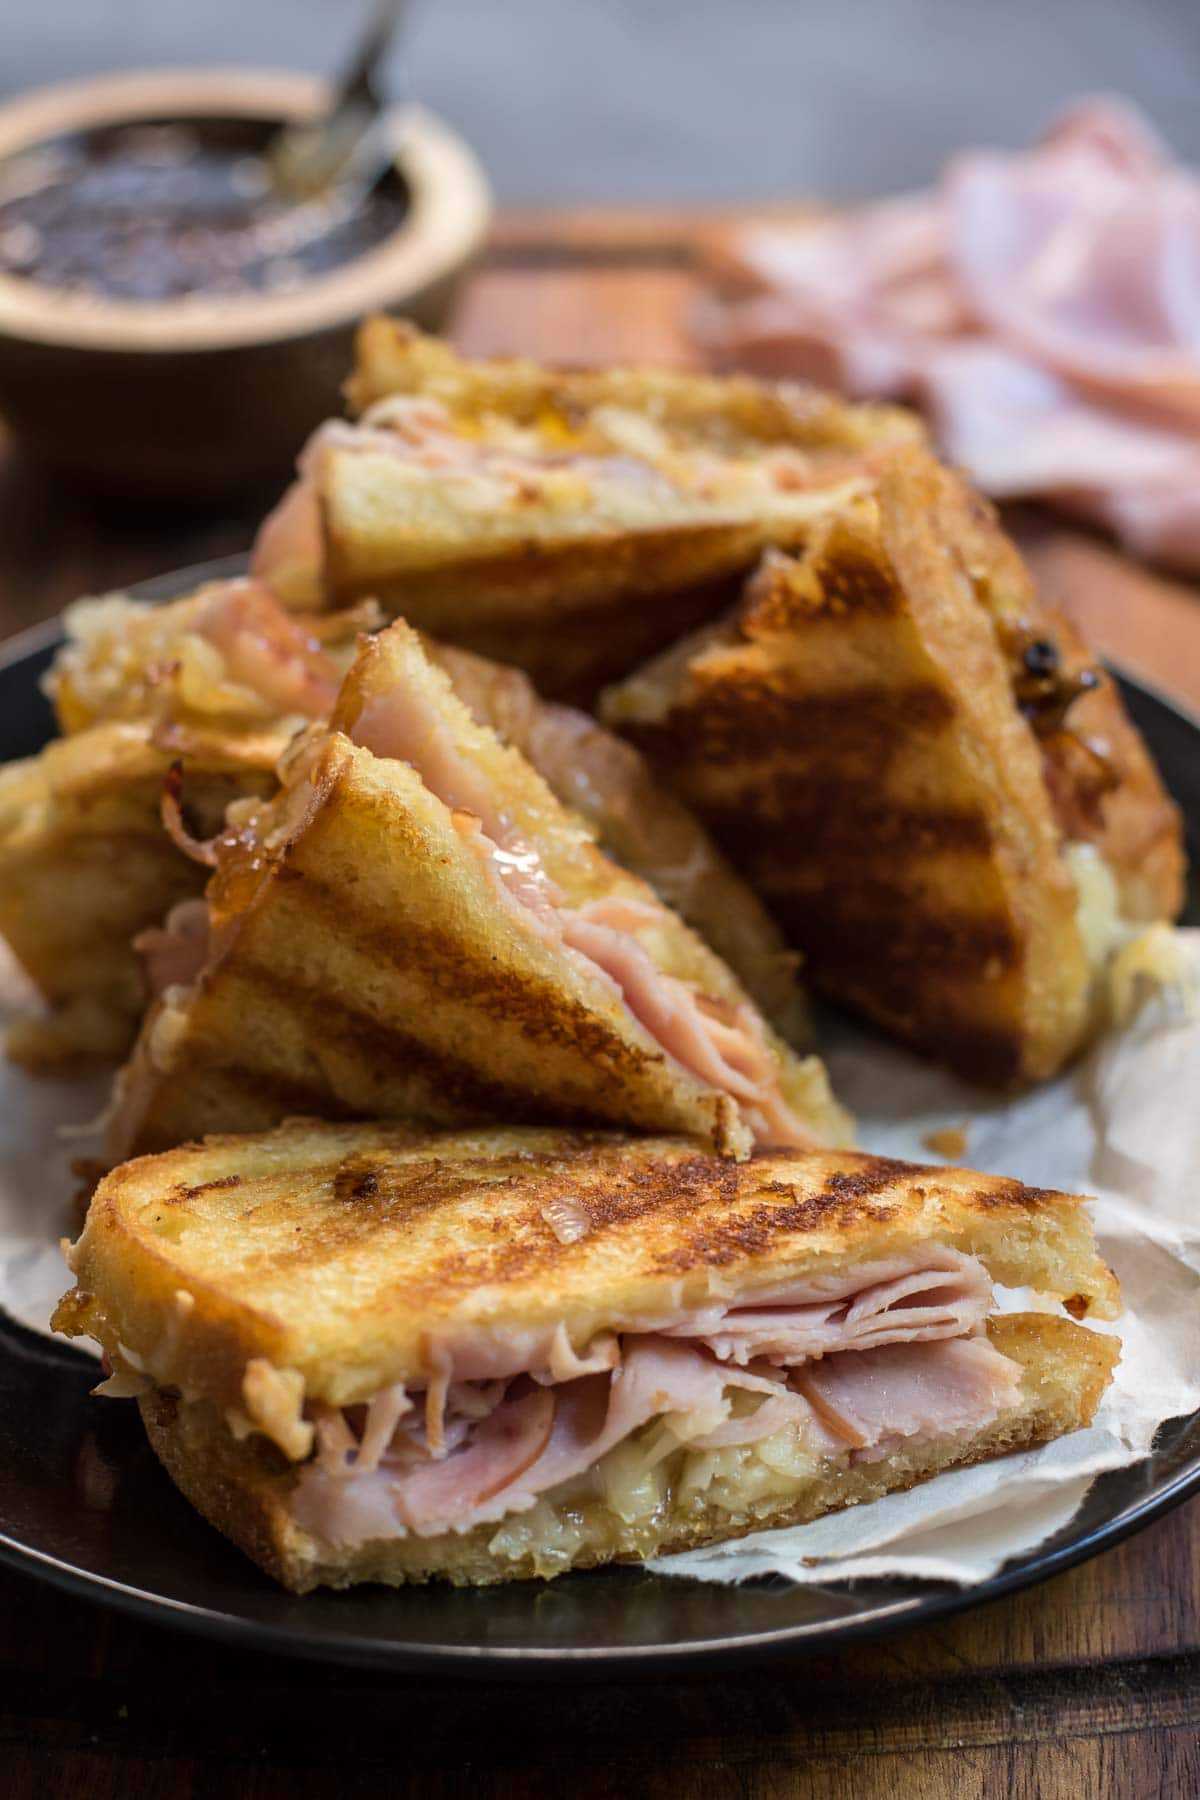 This sweet and savory Gruyere Grilled Cheese with Ham, Caramelized Onions, and Fig Jam is irresistible.